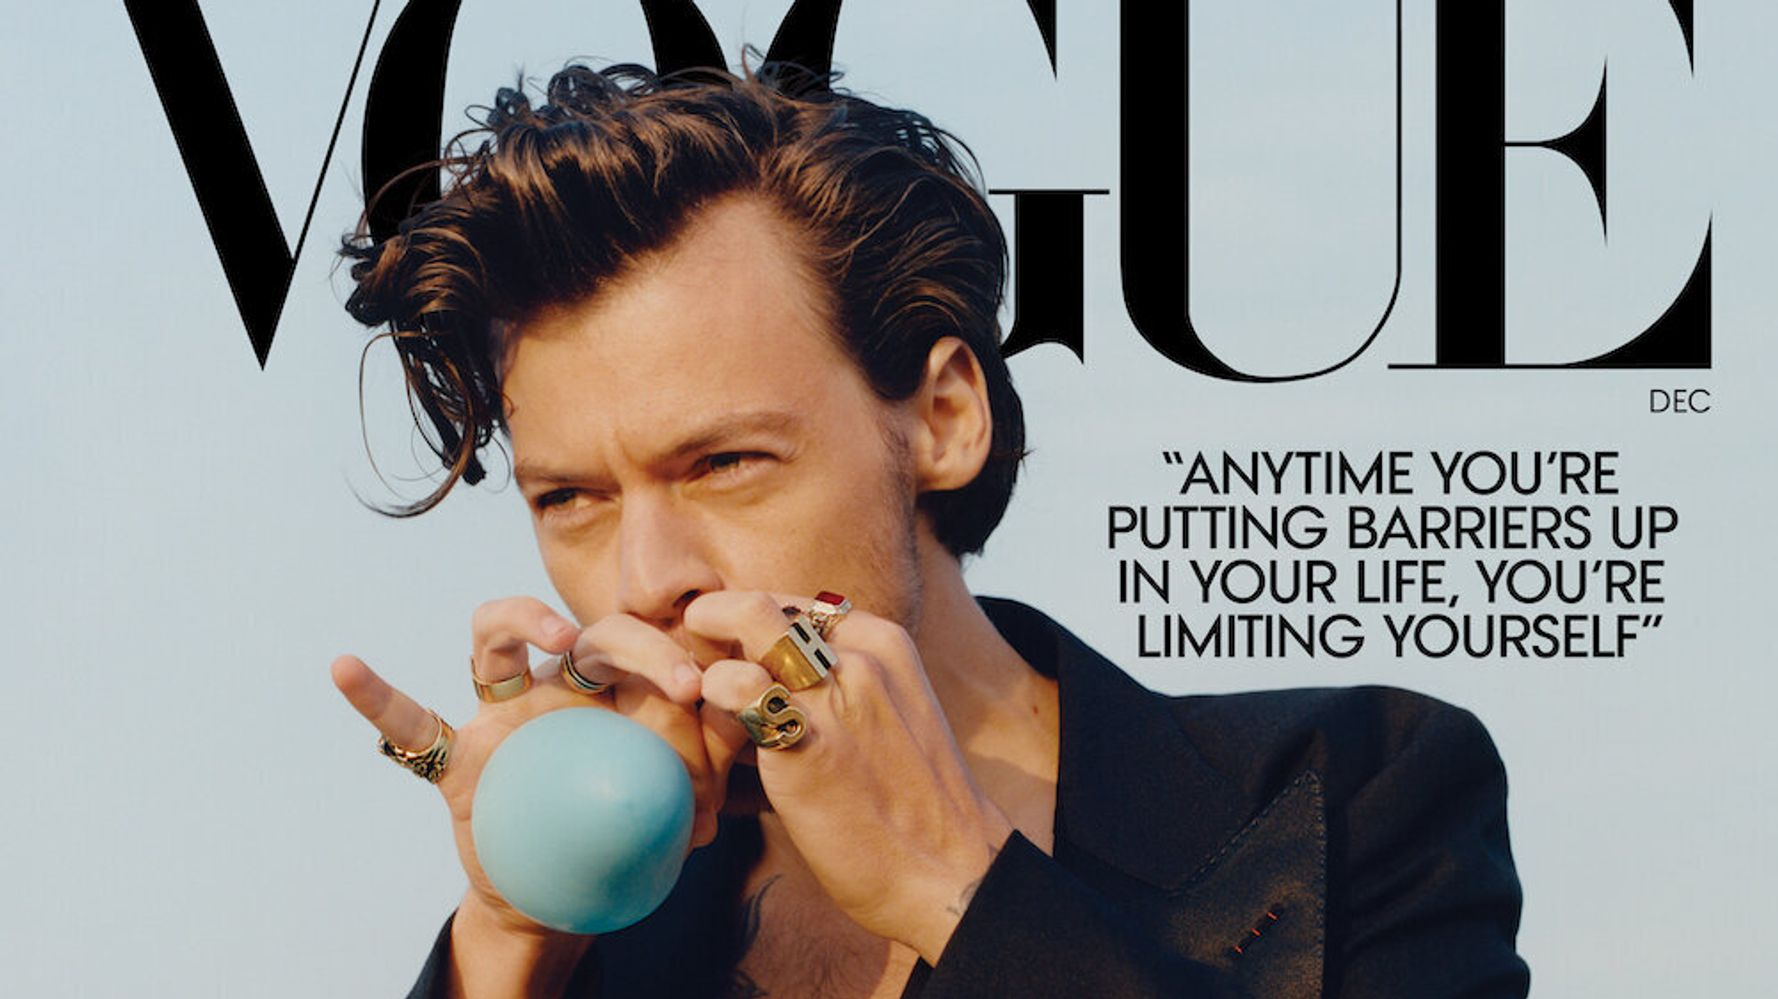 Harry Styles On Challenging Gender Norms Through Style: Women's Clothes Are 'Amazing'